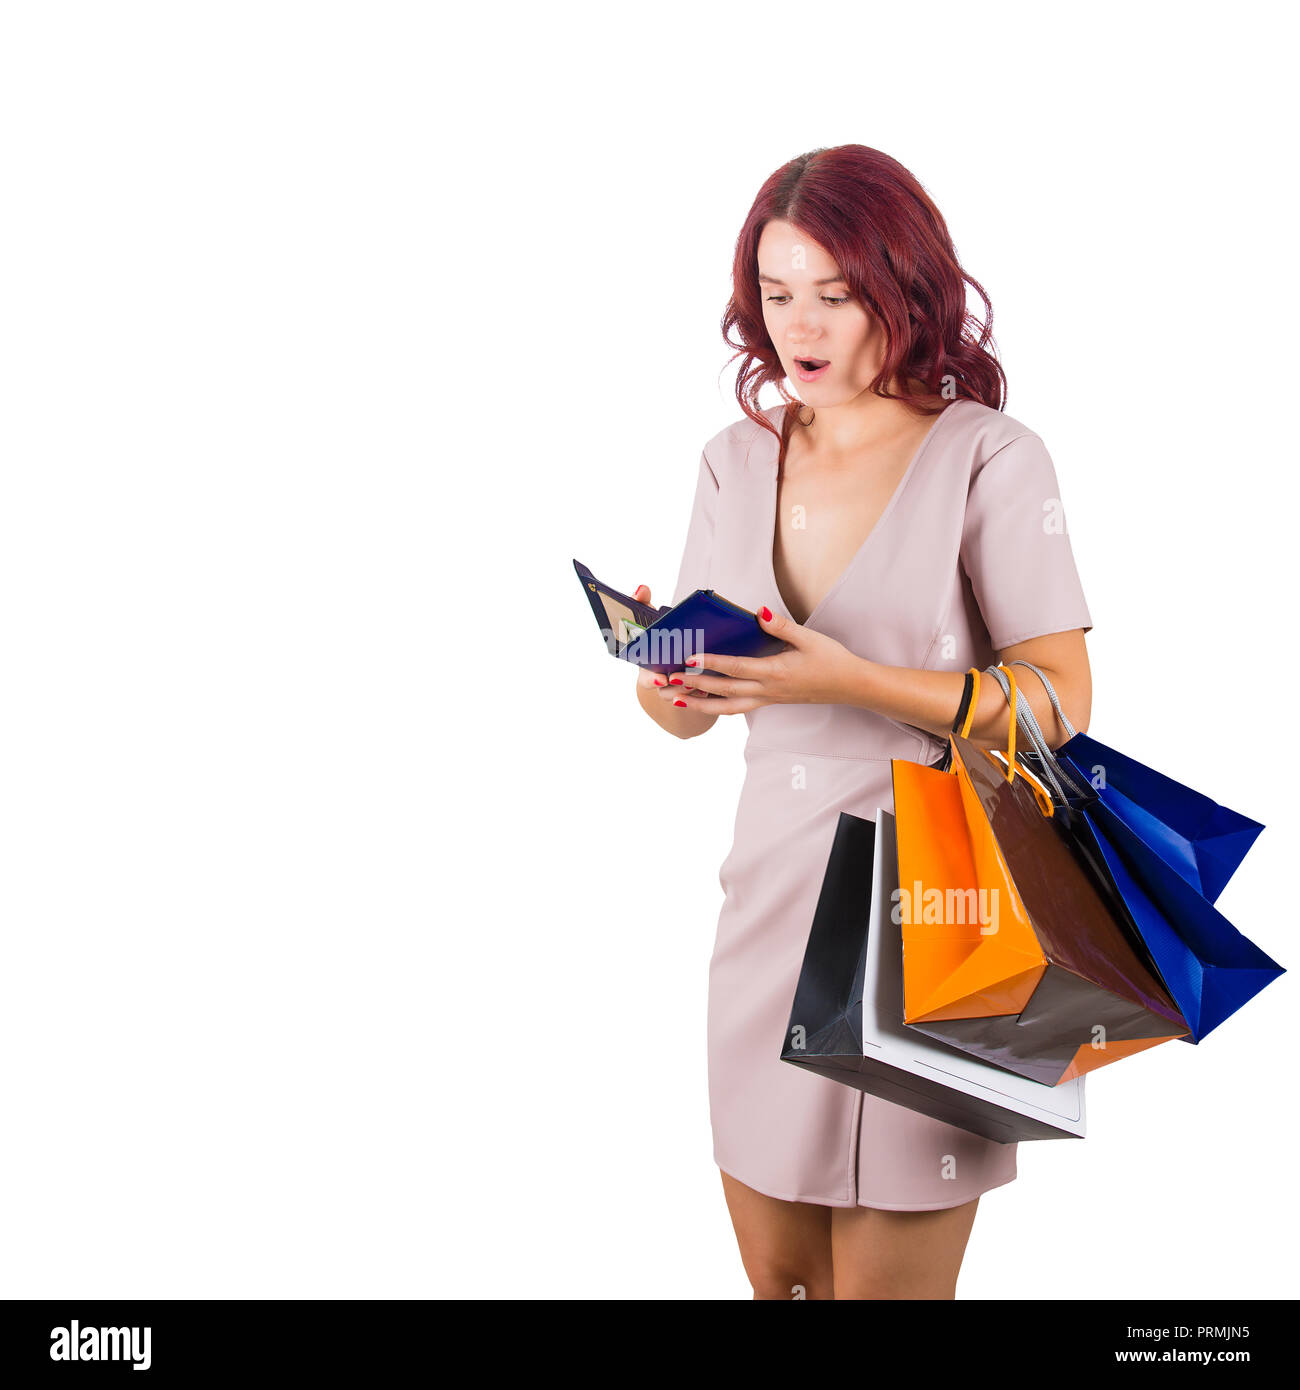 Shocked woman shopaholic carrying bags holding a empty wallet, has no money for shopping in her pouch isolated over white background. - Stock Image